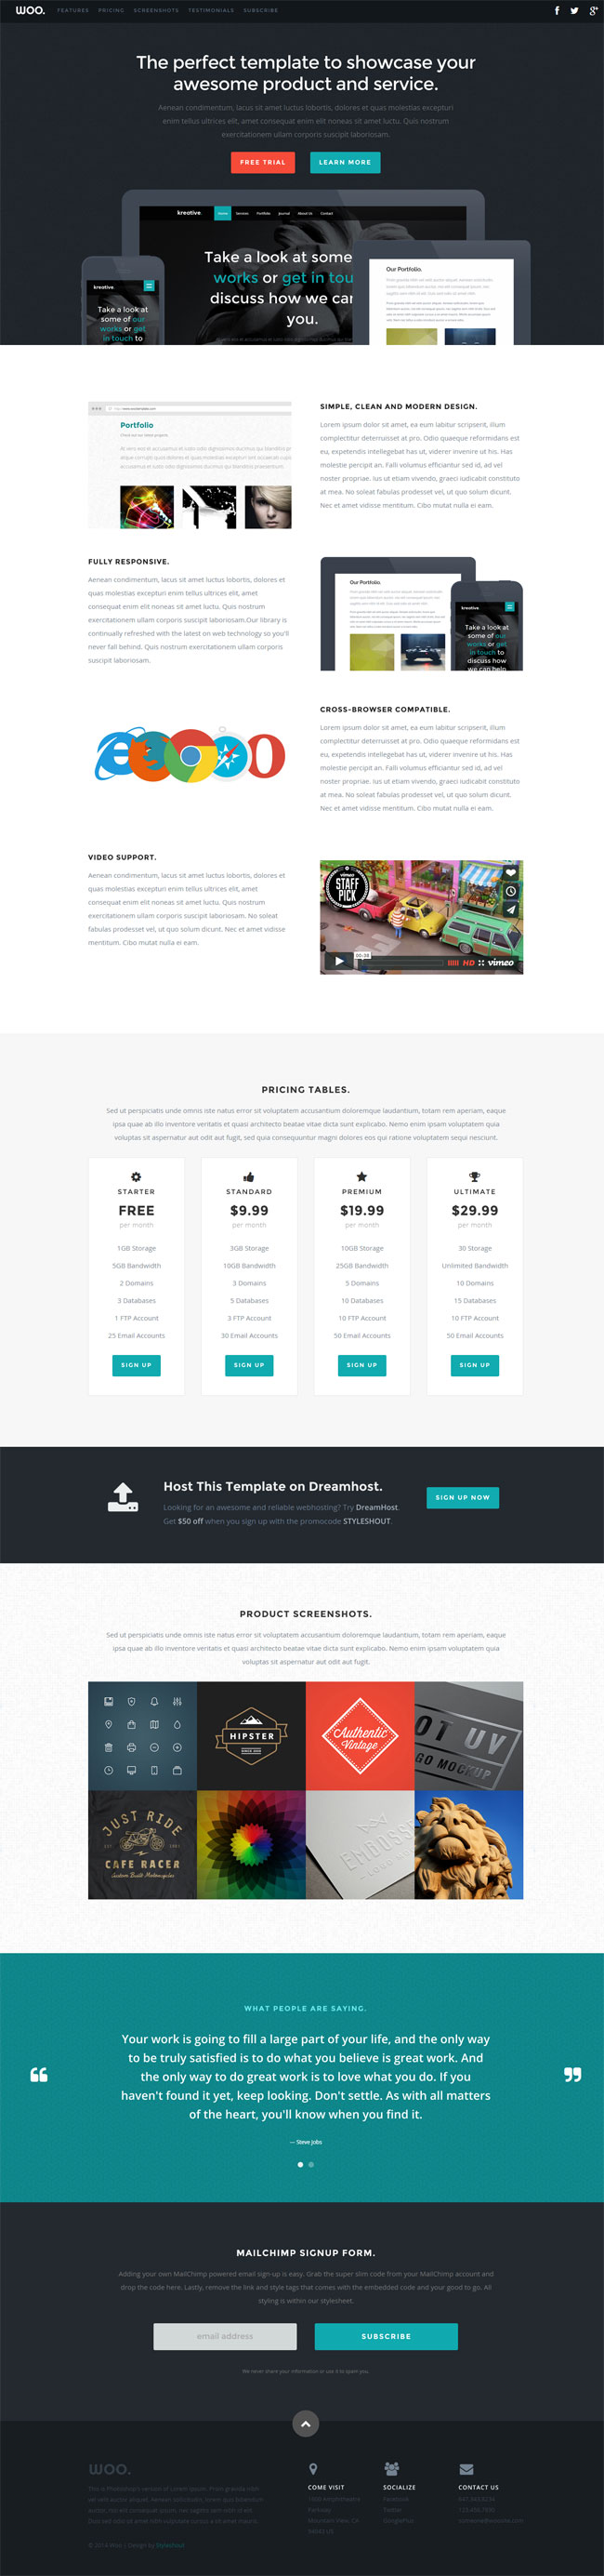 Woo - Free HTML One Page Template